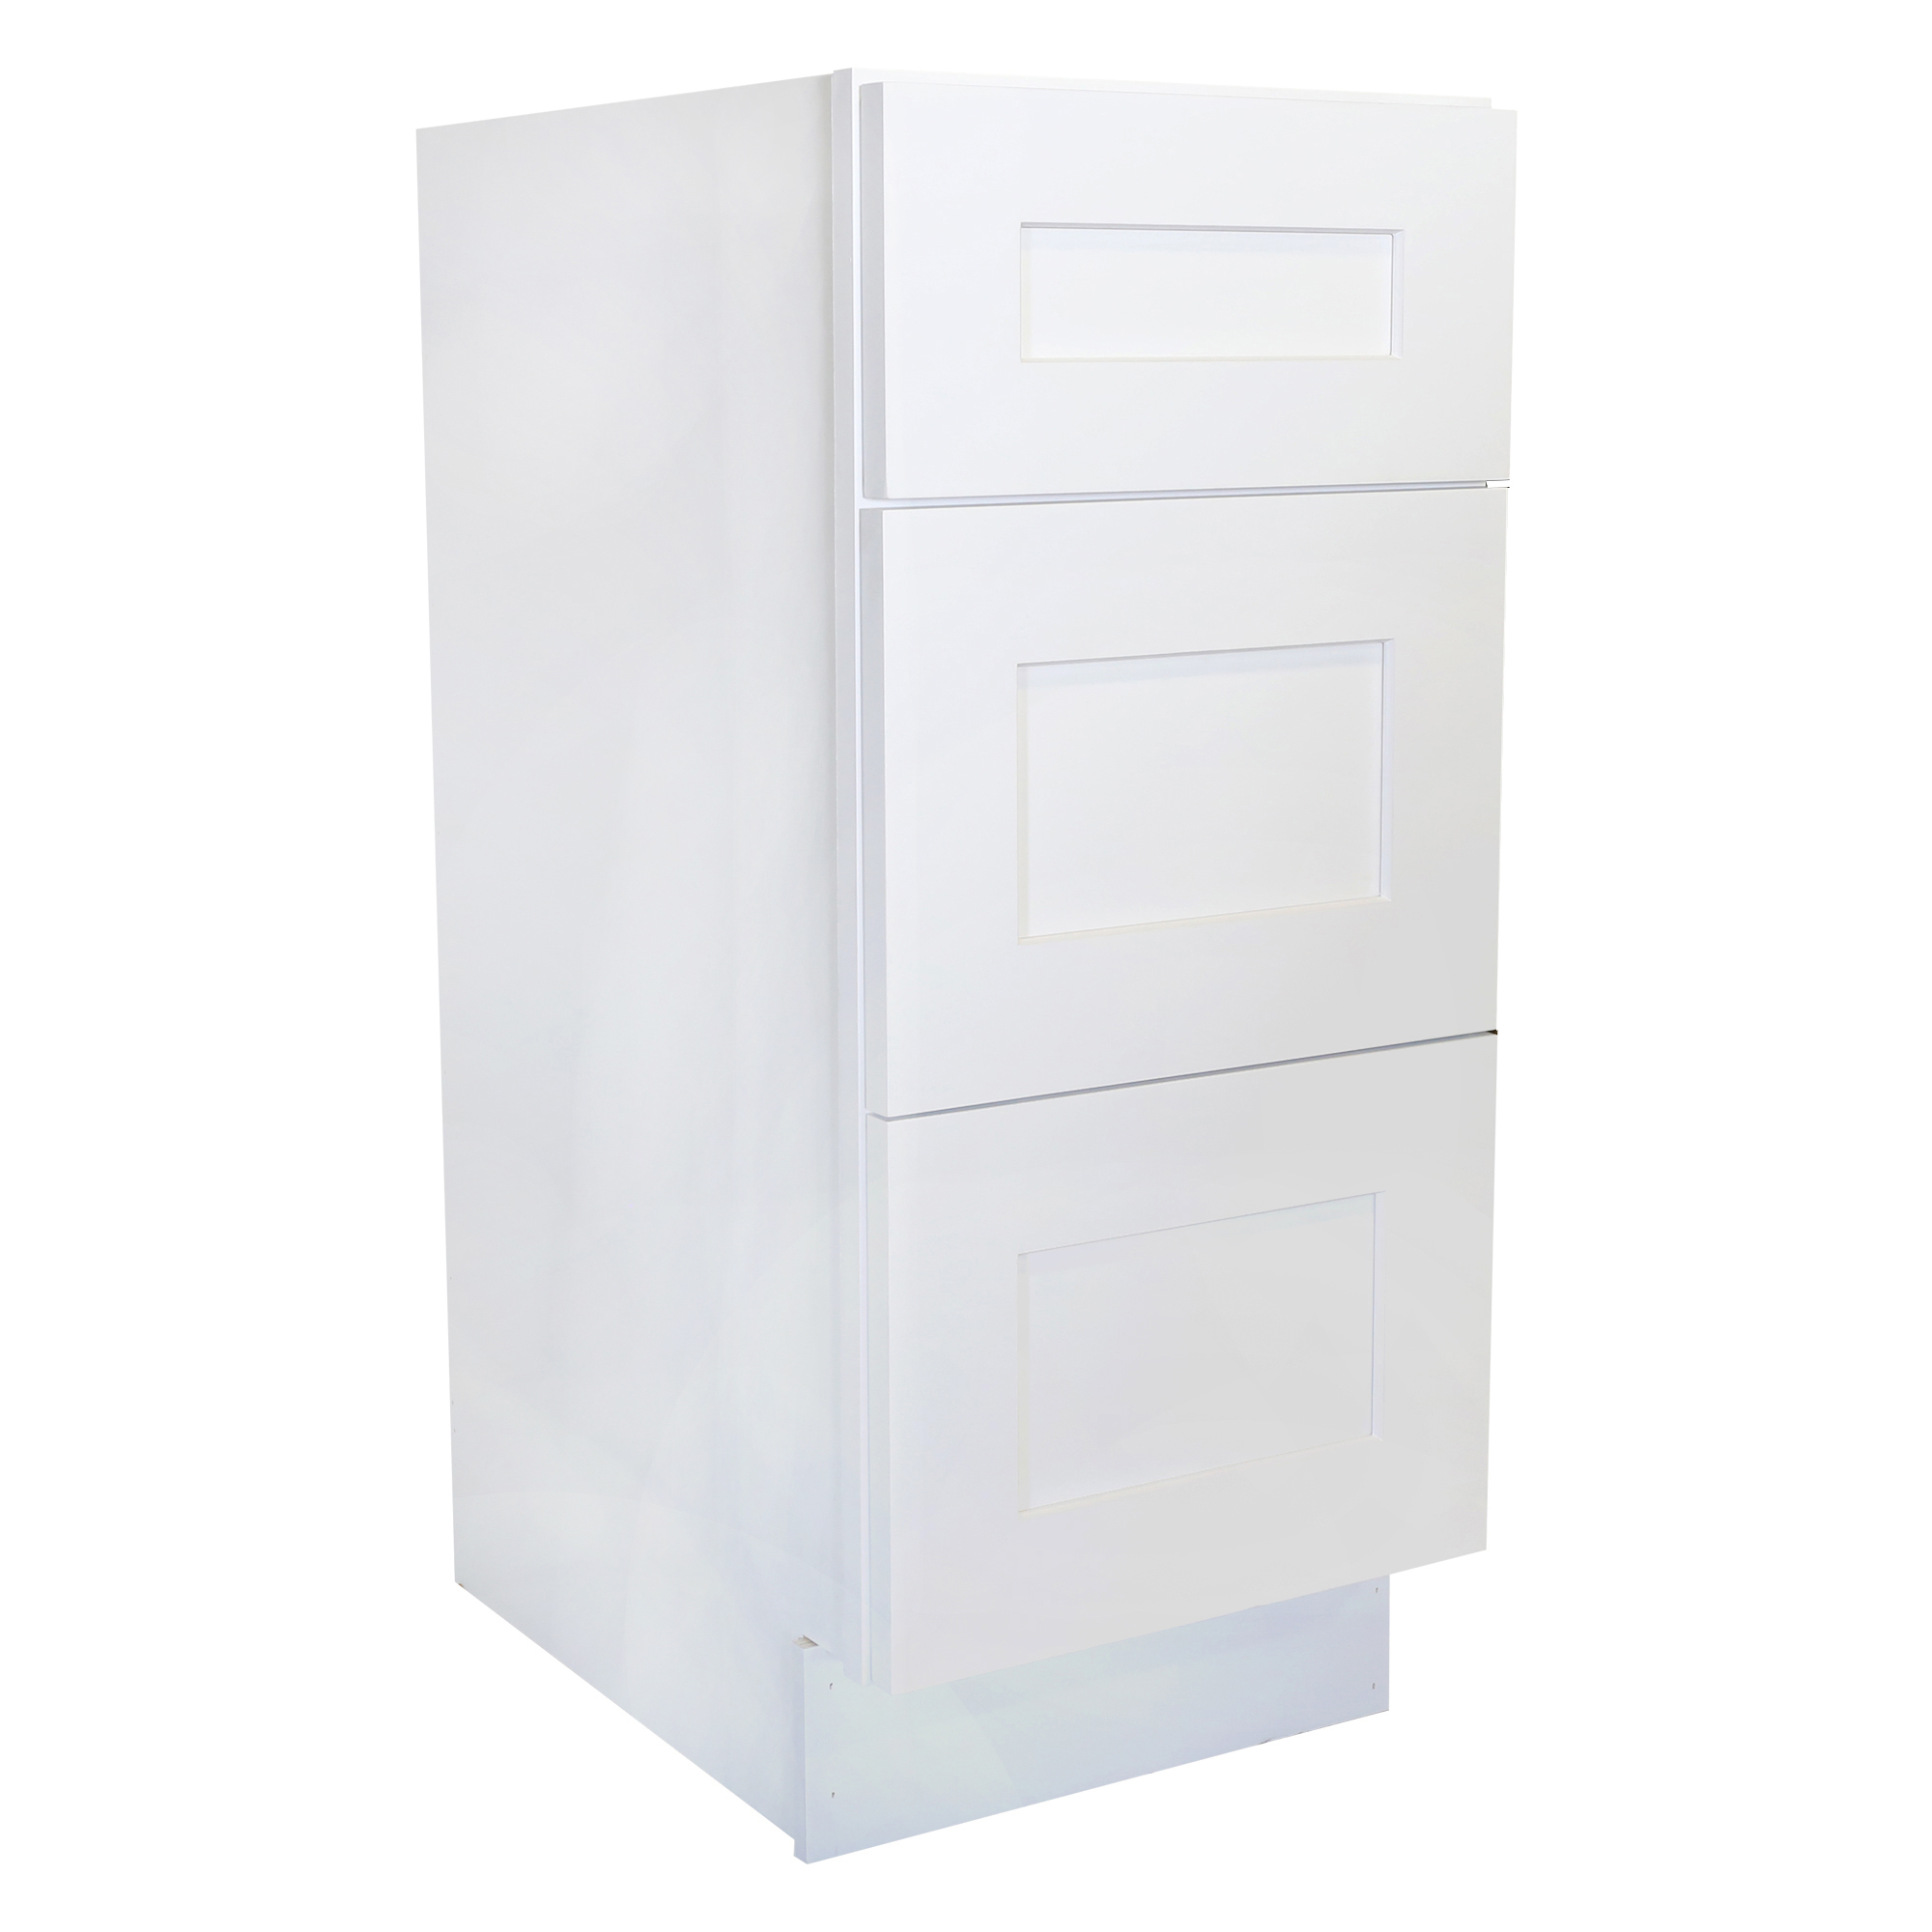 Ready to Assemble 18Wx84Hx24D in. Shaker VANITY LINEN PANTRY-2 DOORS in White